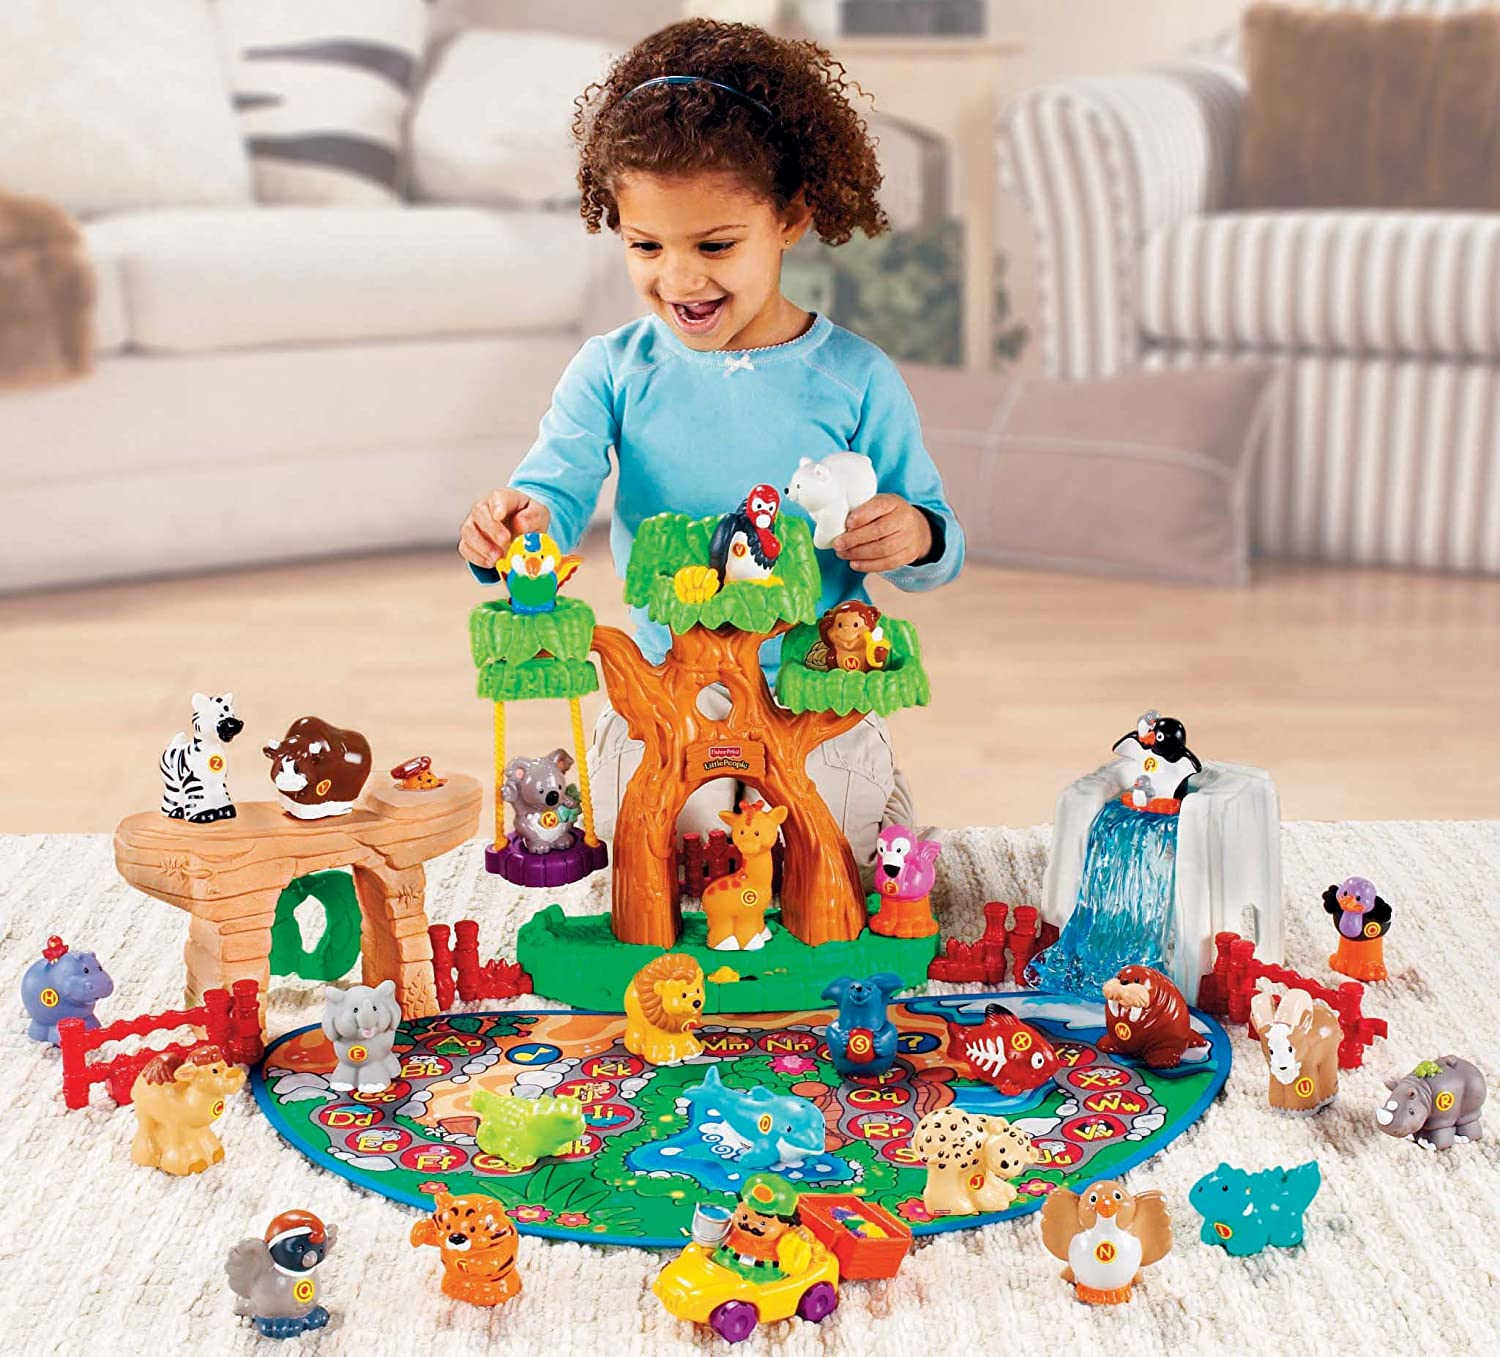 Amazon Little People A To Z Learning Zoo Playset Toys & Games